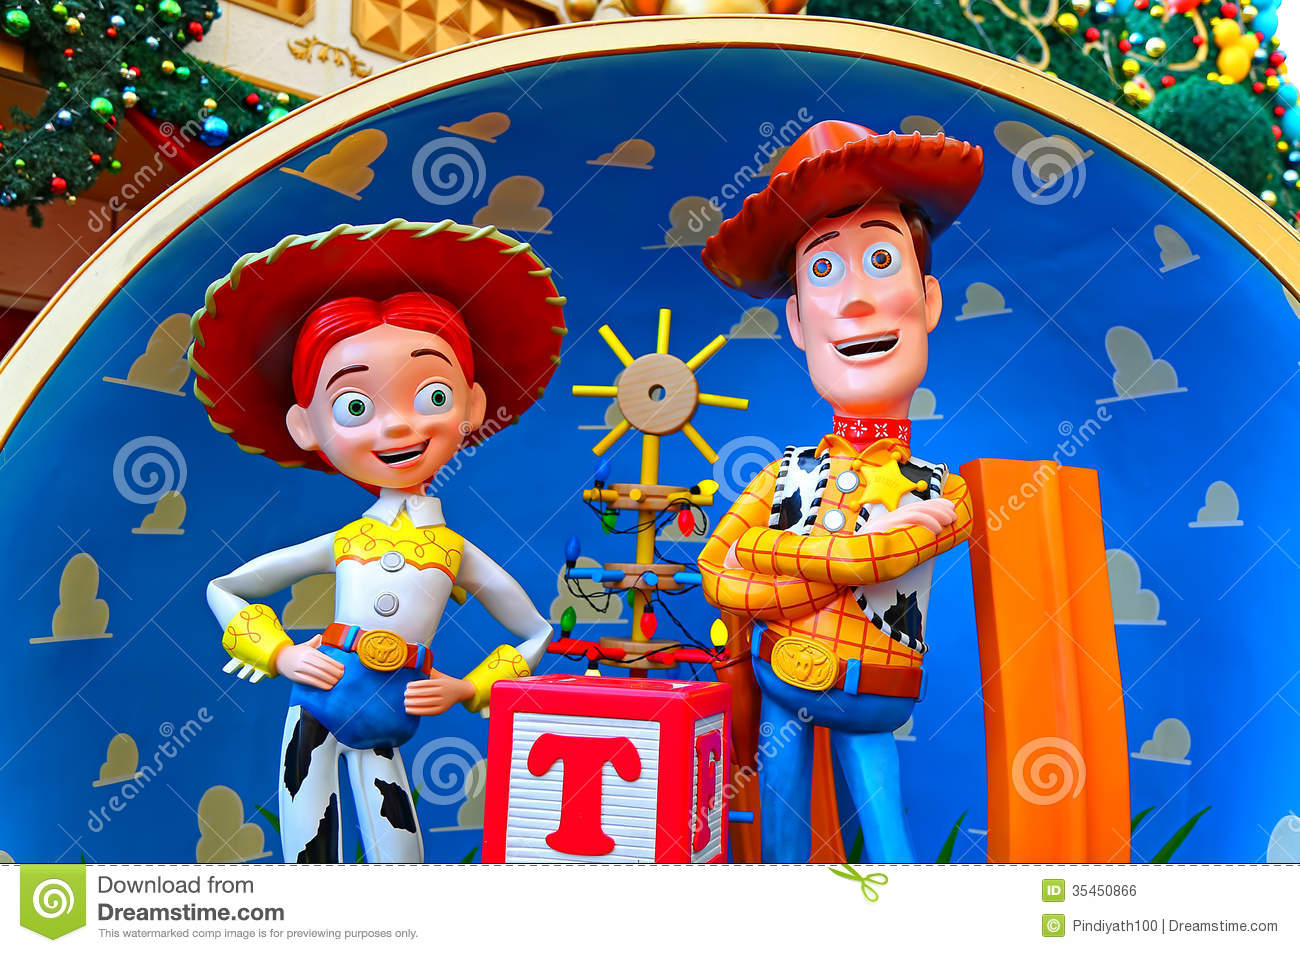 Disney Pixar Toy Story Characters Woody And Jessie Editorial Photo ...